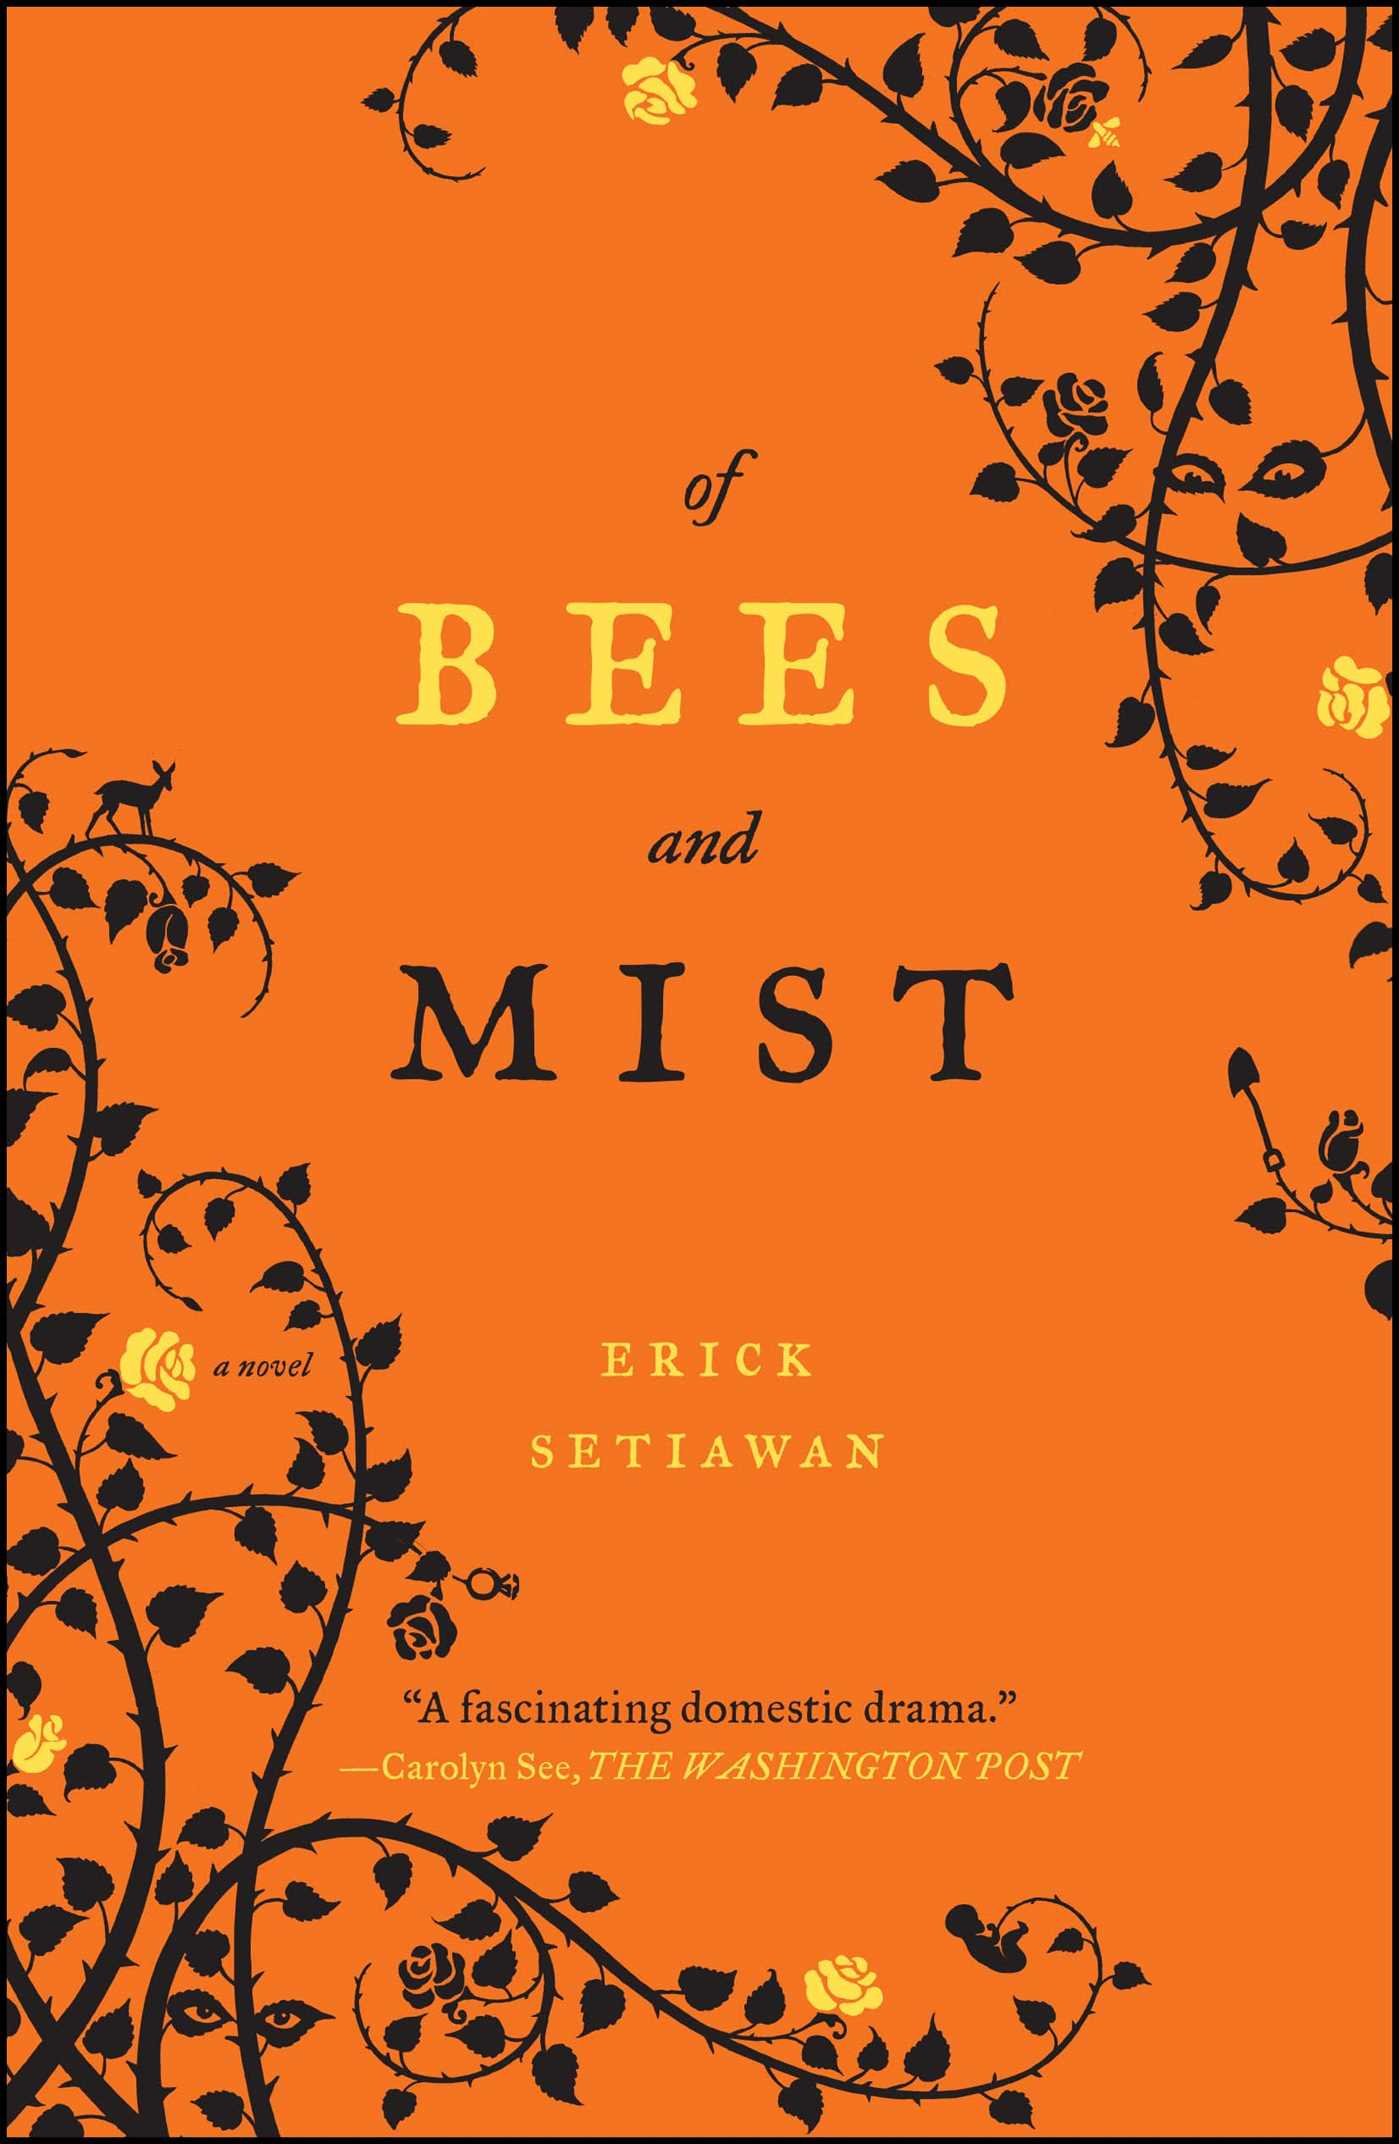 Of bees and mist 9781416596257 hr